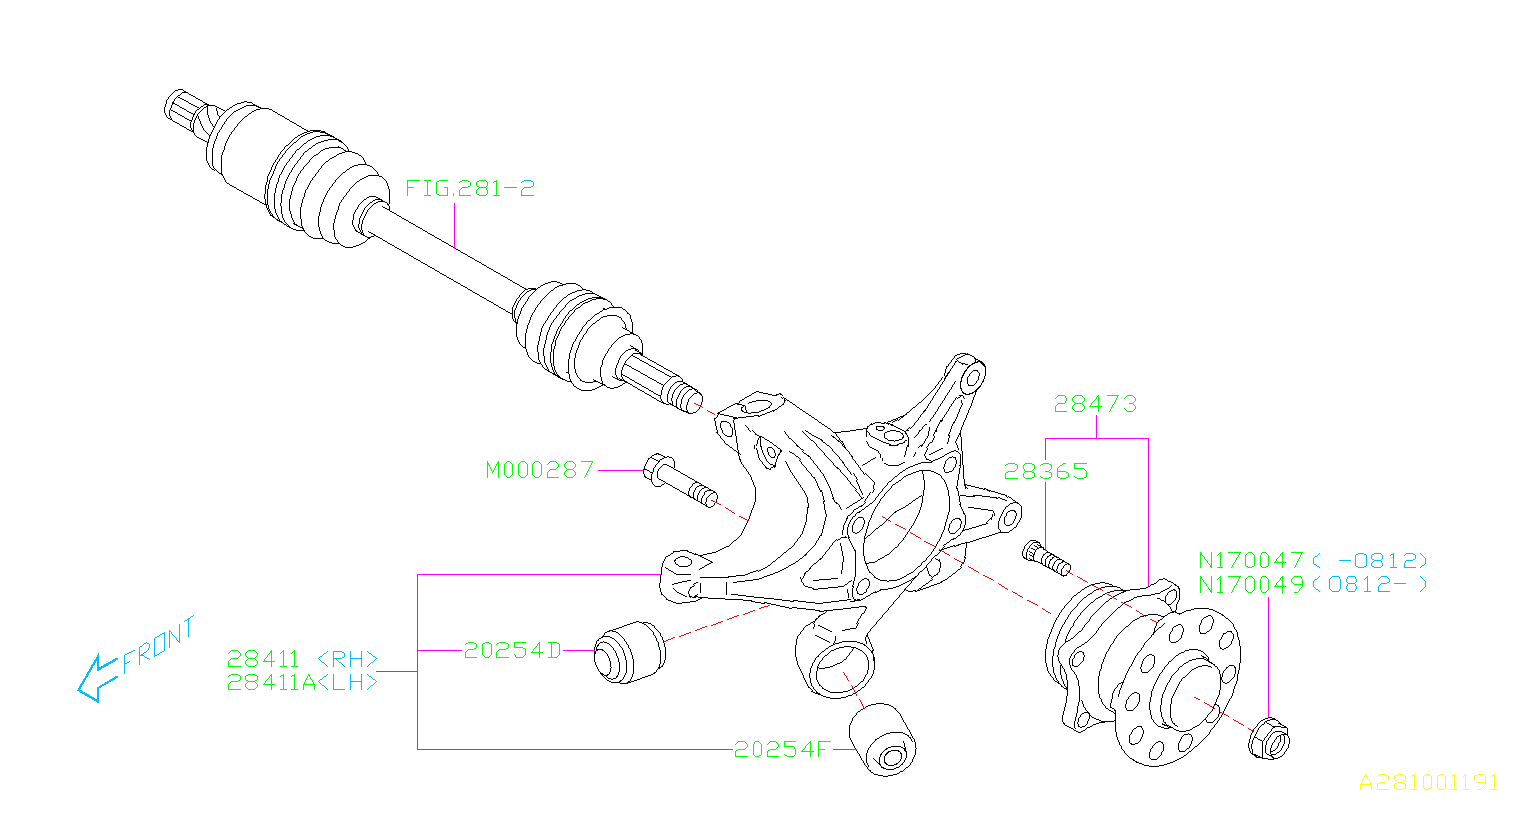 Subaru Outback Rear Suspension Schematics